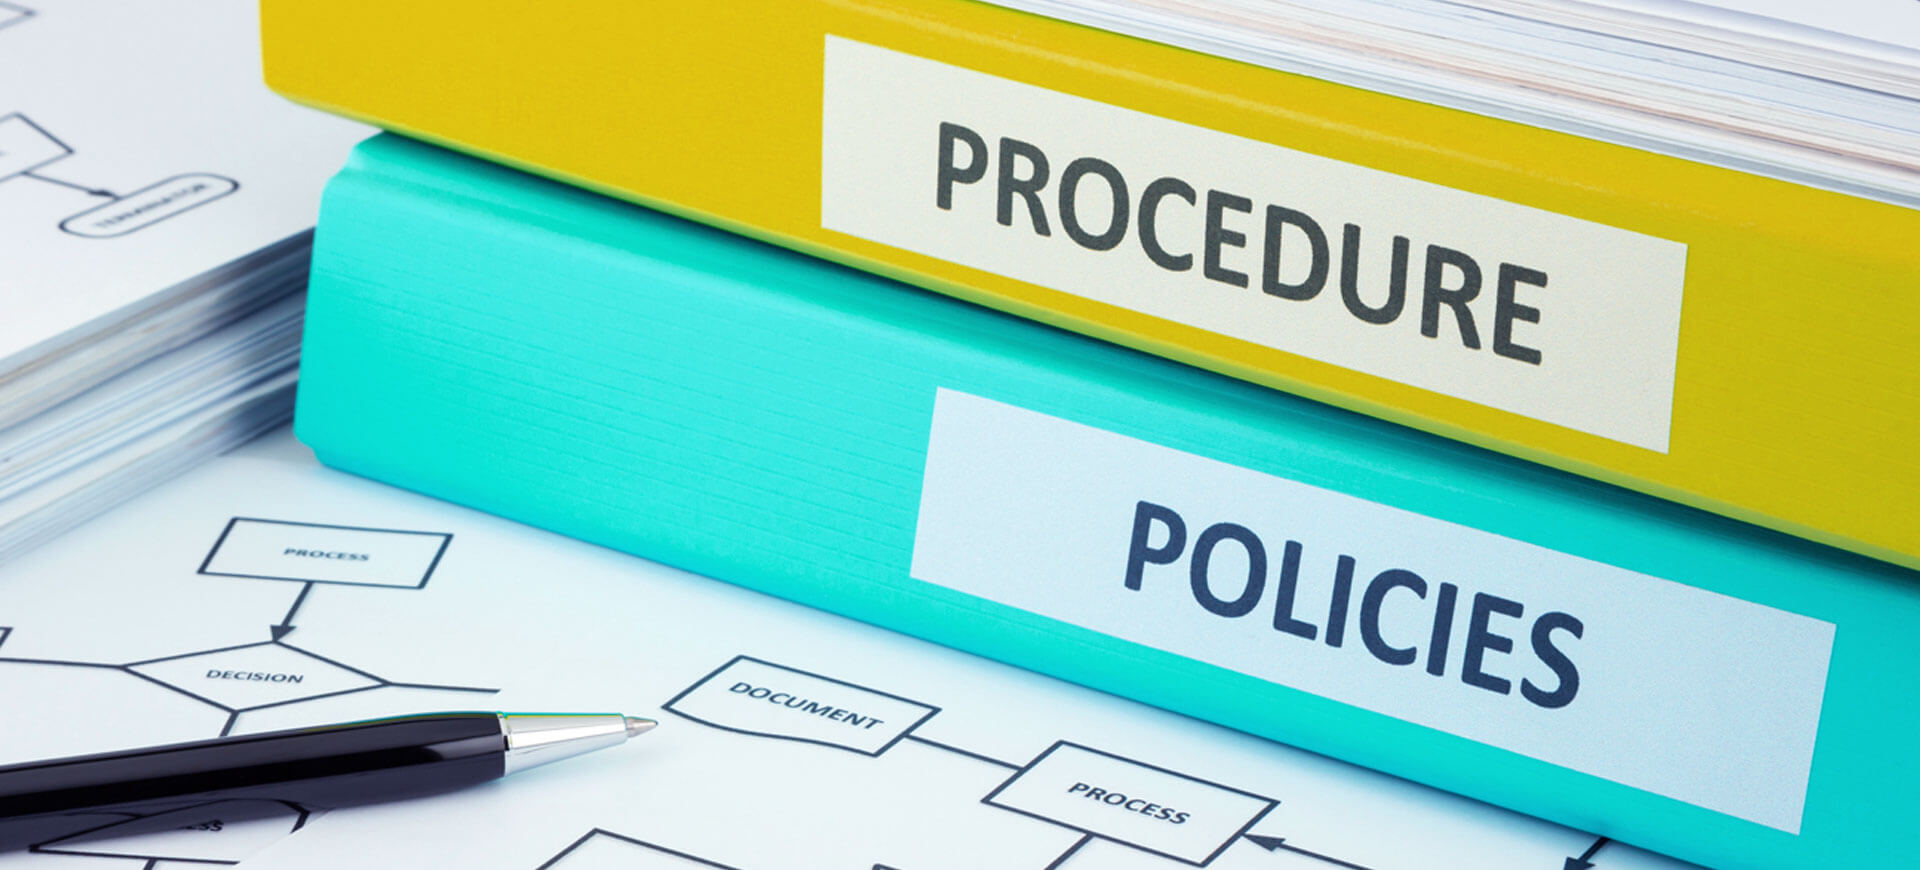 Procedure Manuals and Policies